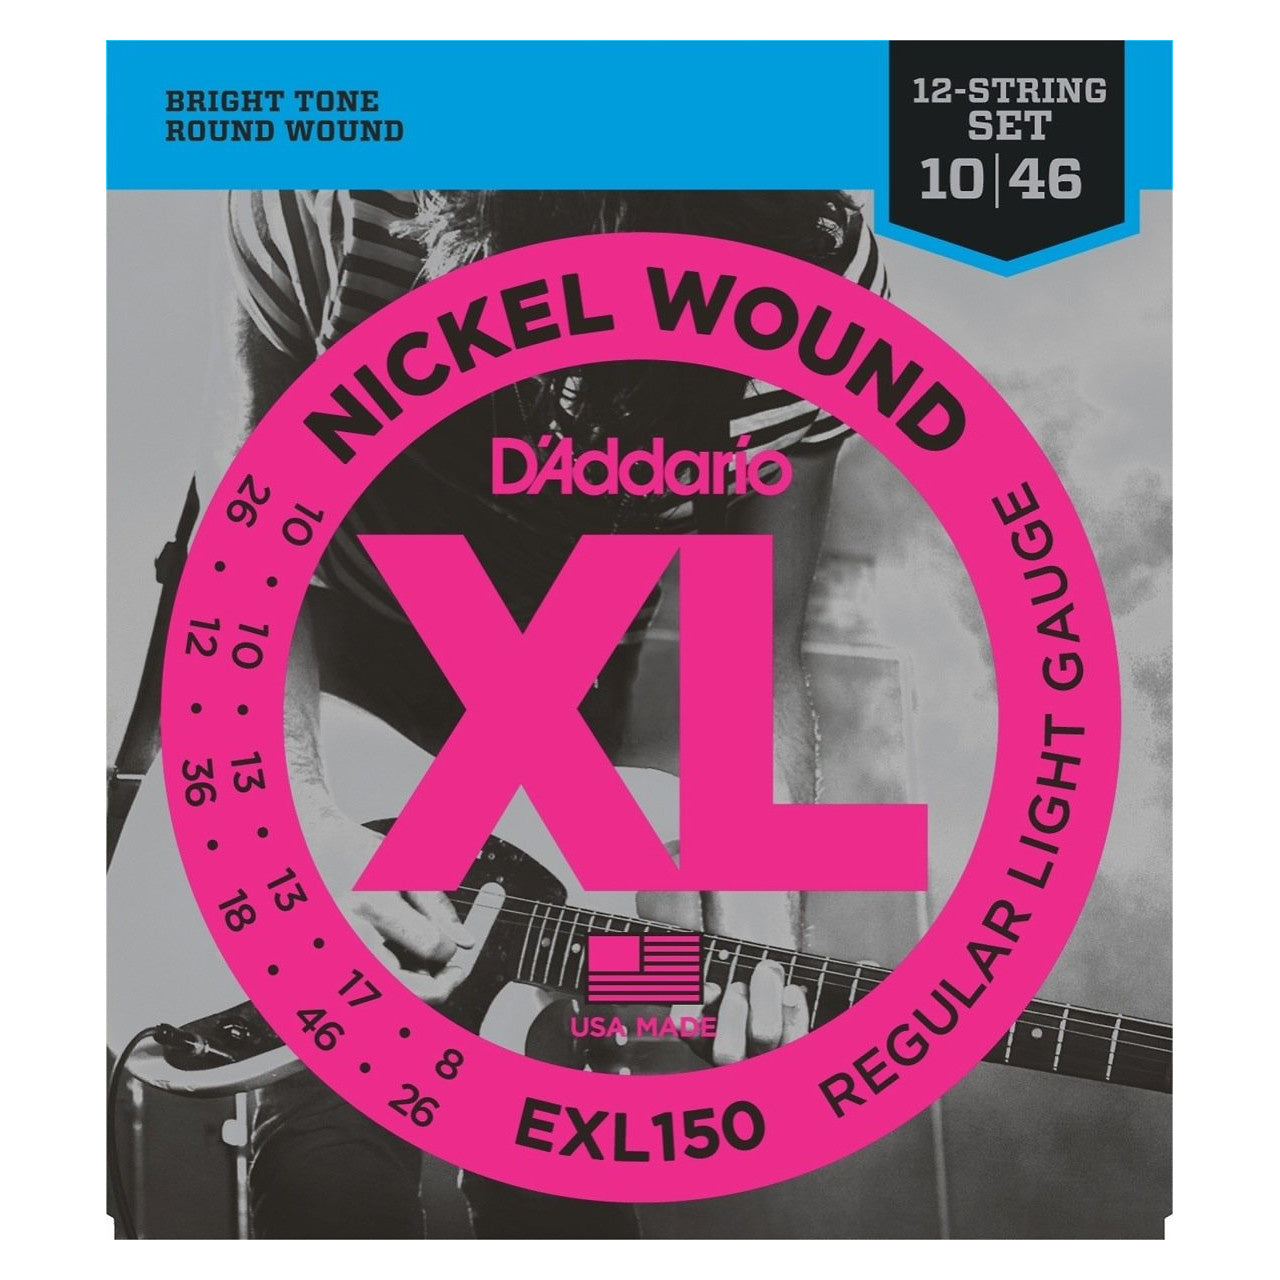 D'Addario EXL150 12-String Electric Guitar Strings (Regular Light)